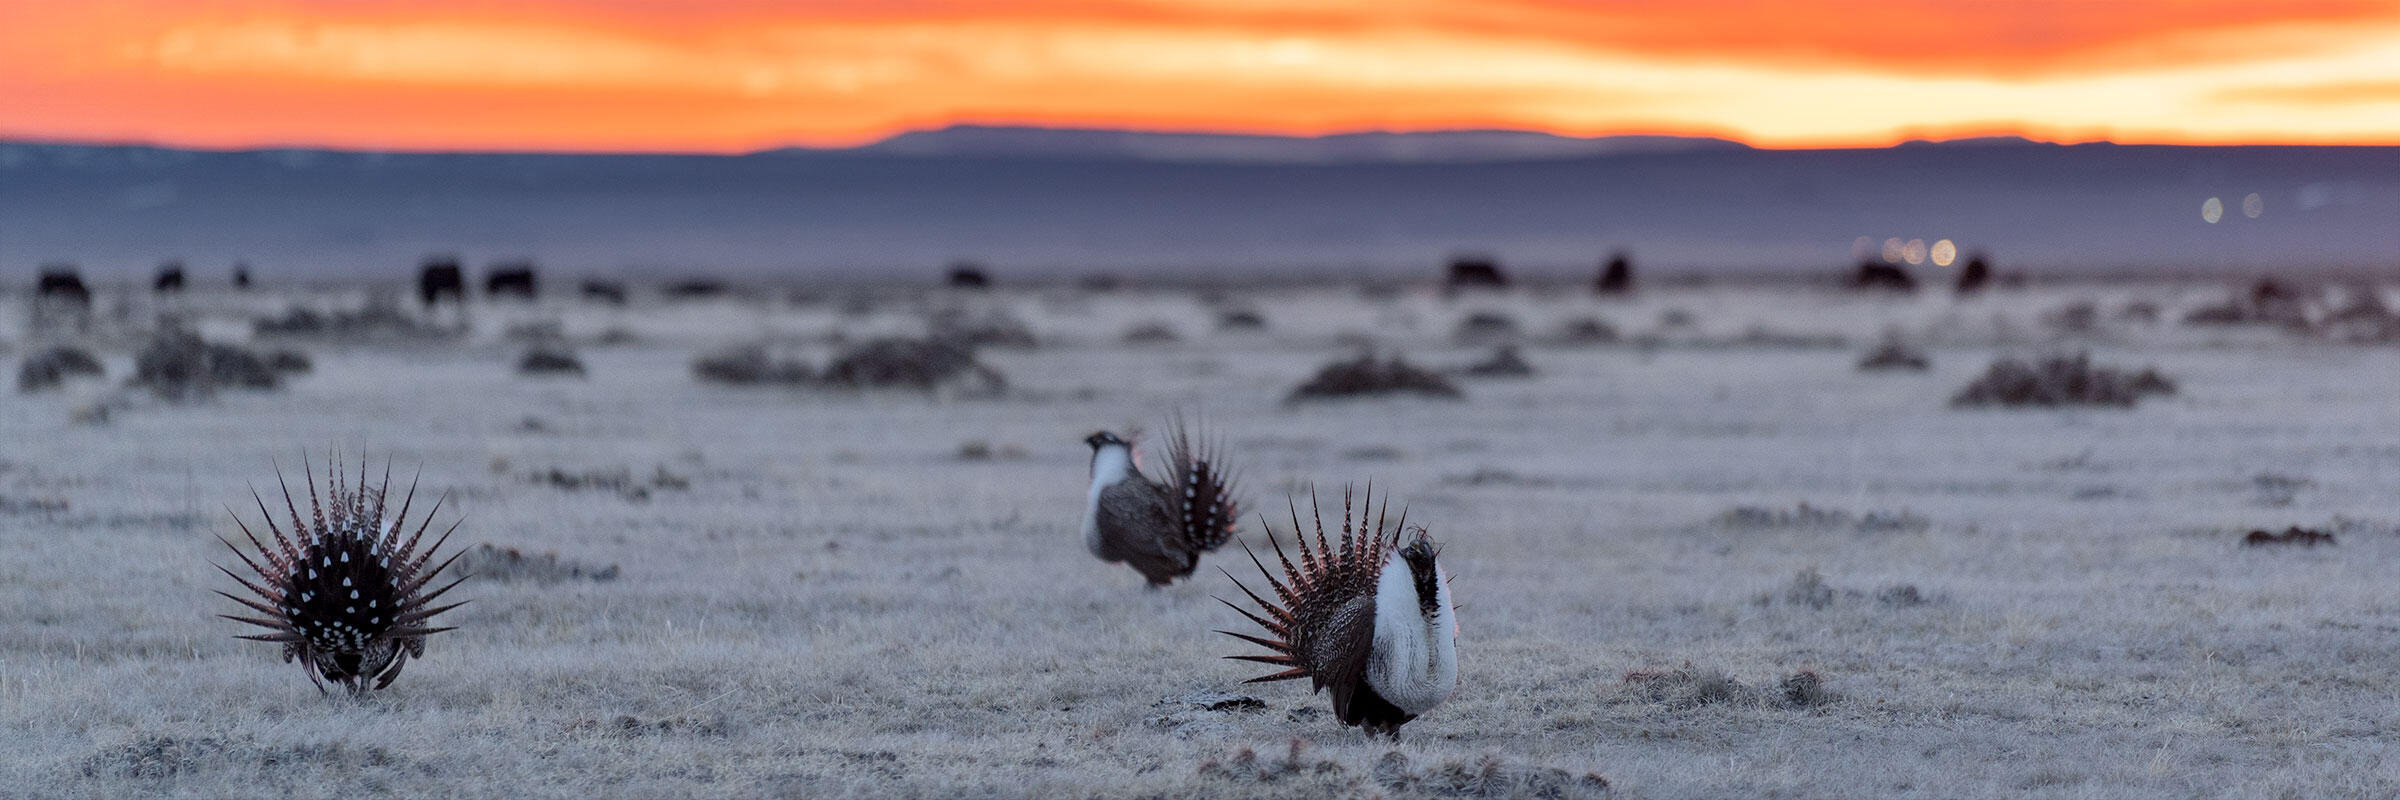 Greater Sage-Grouse display at sunrise.